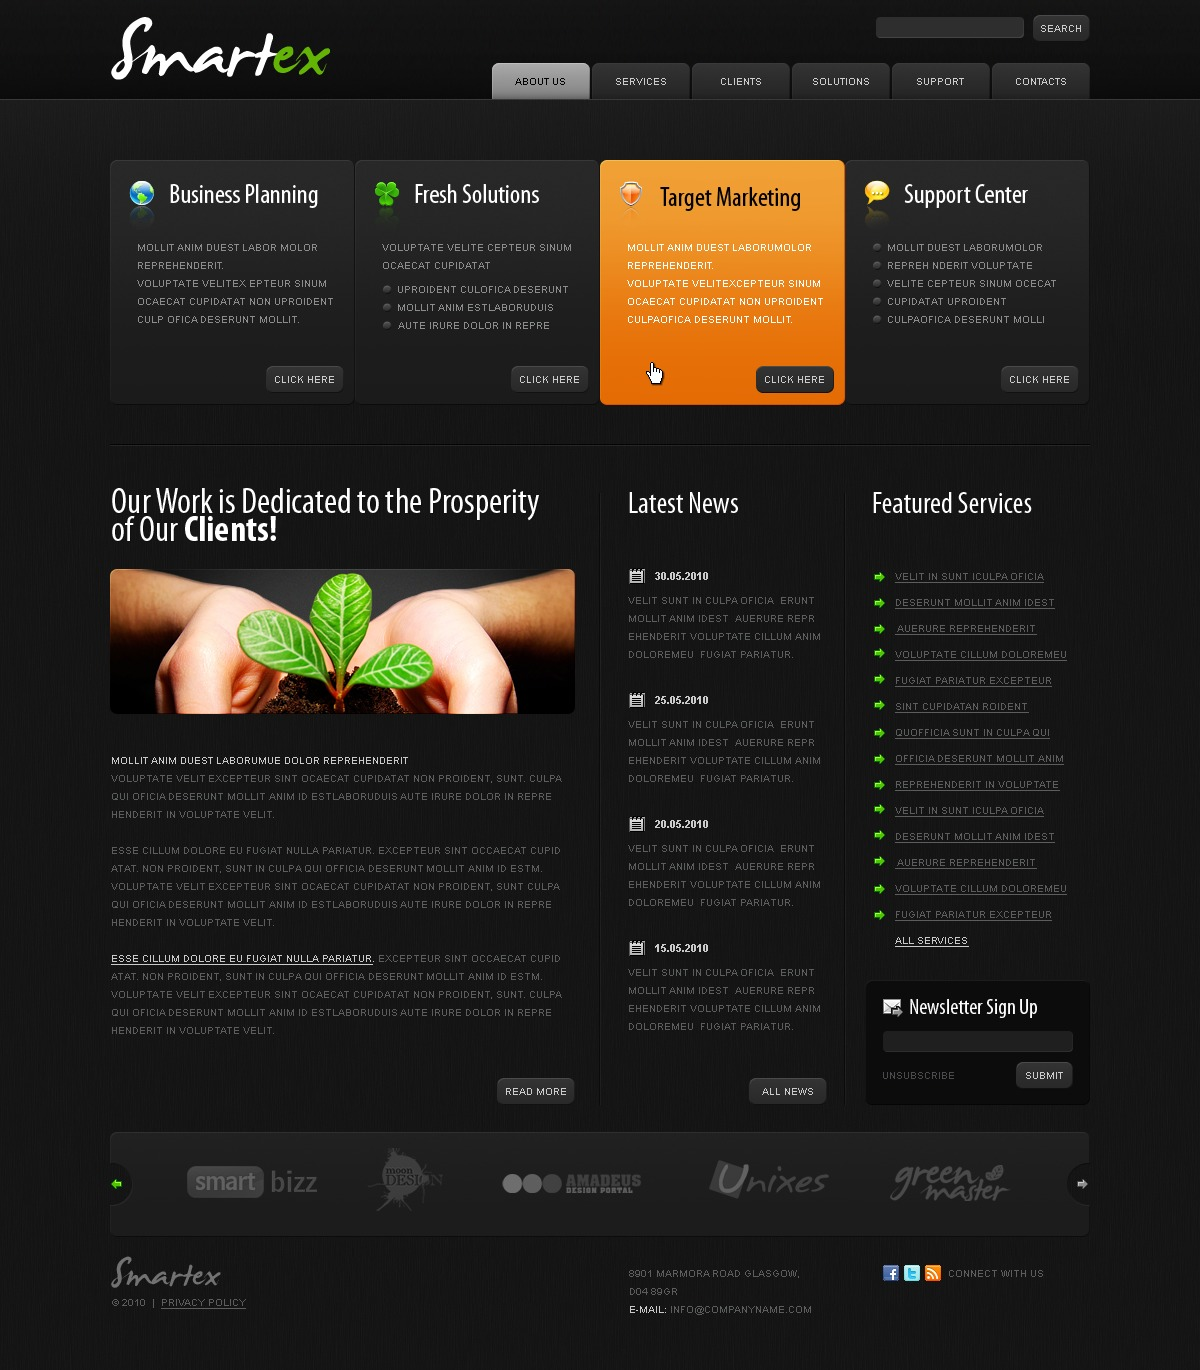 The Smartex Business Company PSD Design 54062, one of the best PSD templates of its kind (business, wide, jquery), also known as smartex business company PSD template, corporate solutions PSD template, innovations PSD template, contacts PSD template, service PSD template, support PSD template, information dealer PSD template, stocks PSD template, team PSD template, success PSD template, money PSD template, marketing PSD template, director PSD template, manager PSD template, analytics PSD template, planning PSD template, limited PSD template, office PSD template, sales and related with smartex business company, corporate solutions, innovations, contacts, service, support, information dealer, stocks, team, success, money, marketing, director, manager, analytics, planning, limited, office, sales, etc.